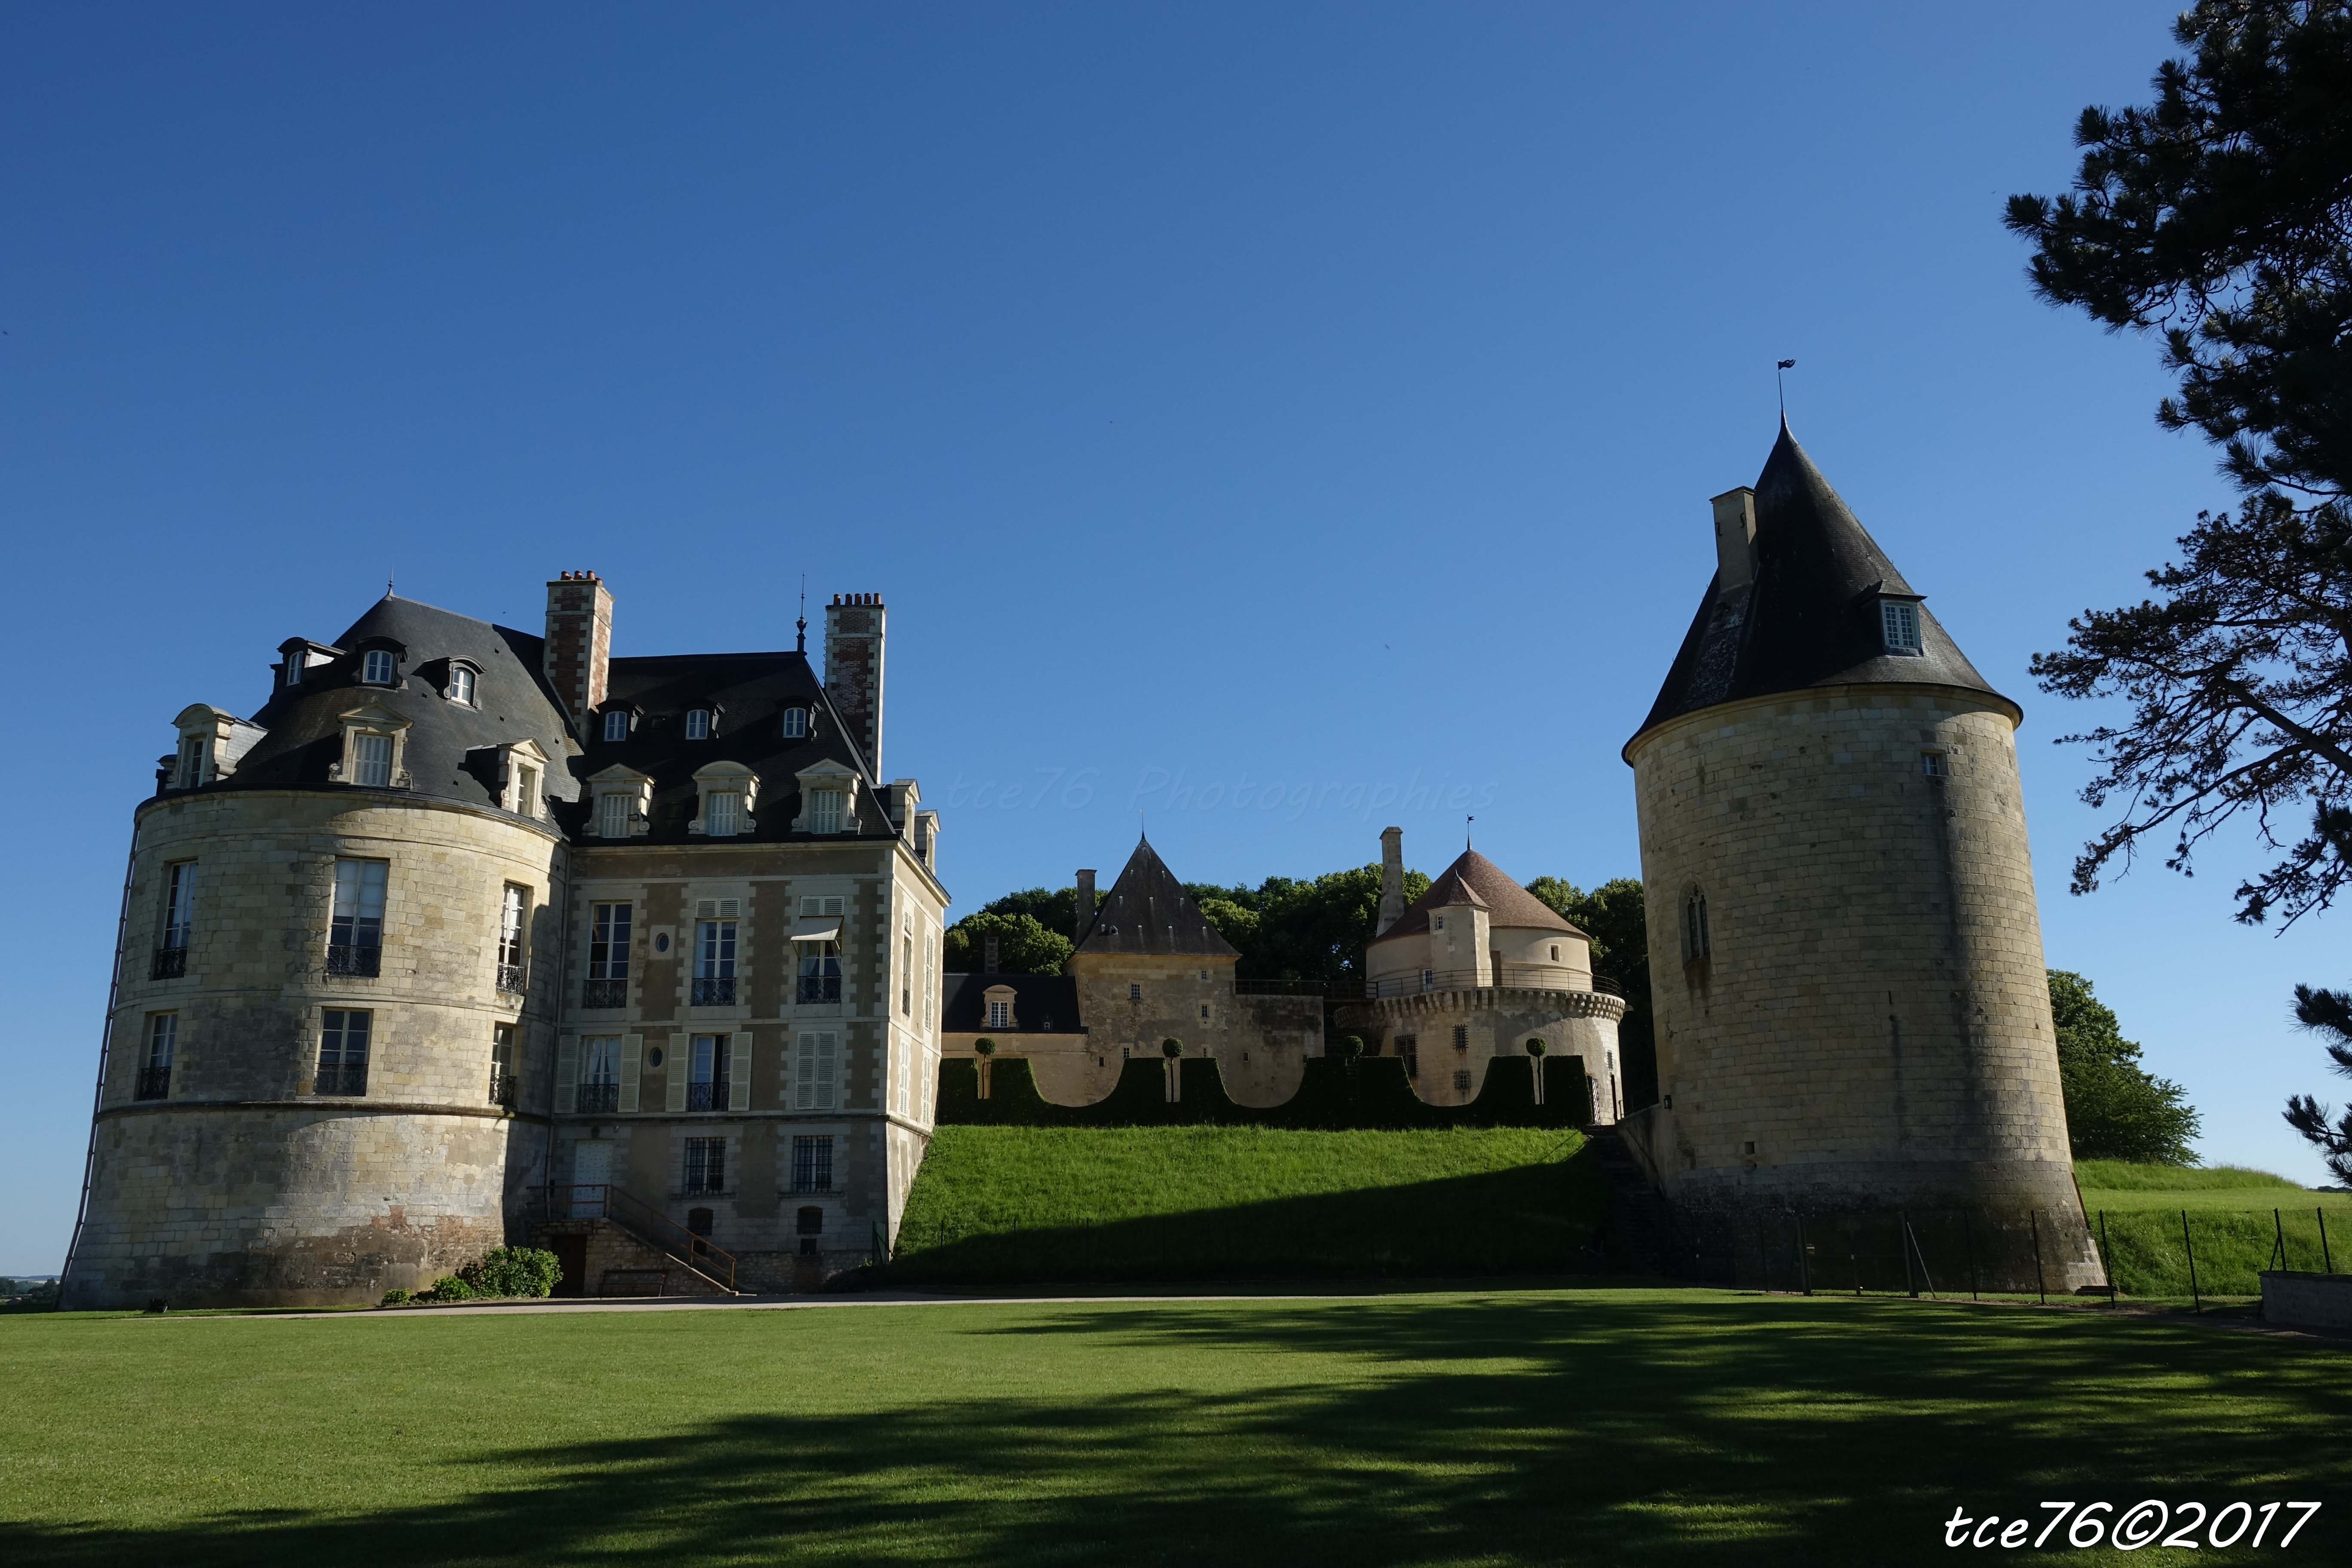 Apremont Sur Allier Chateau Apremont Sur L Allier Tce76 Photographies